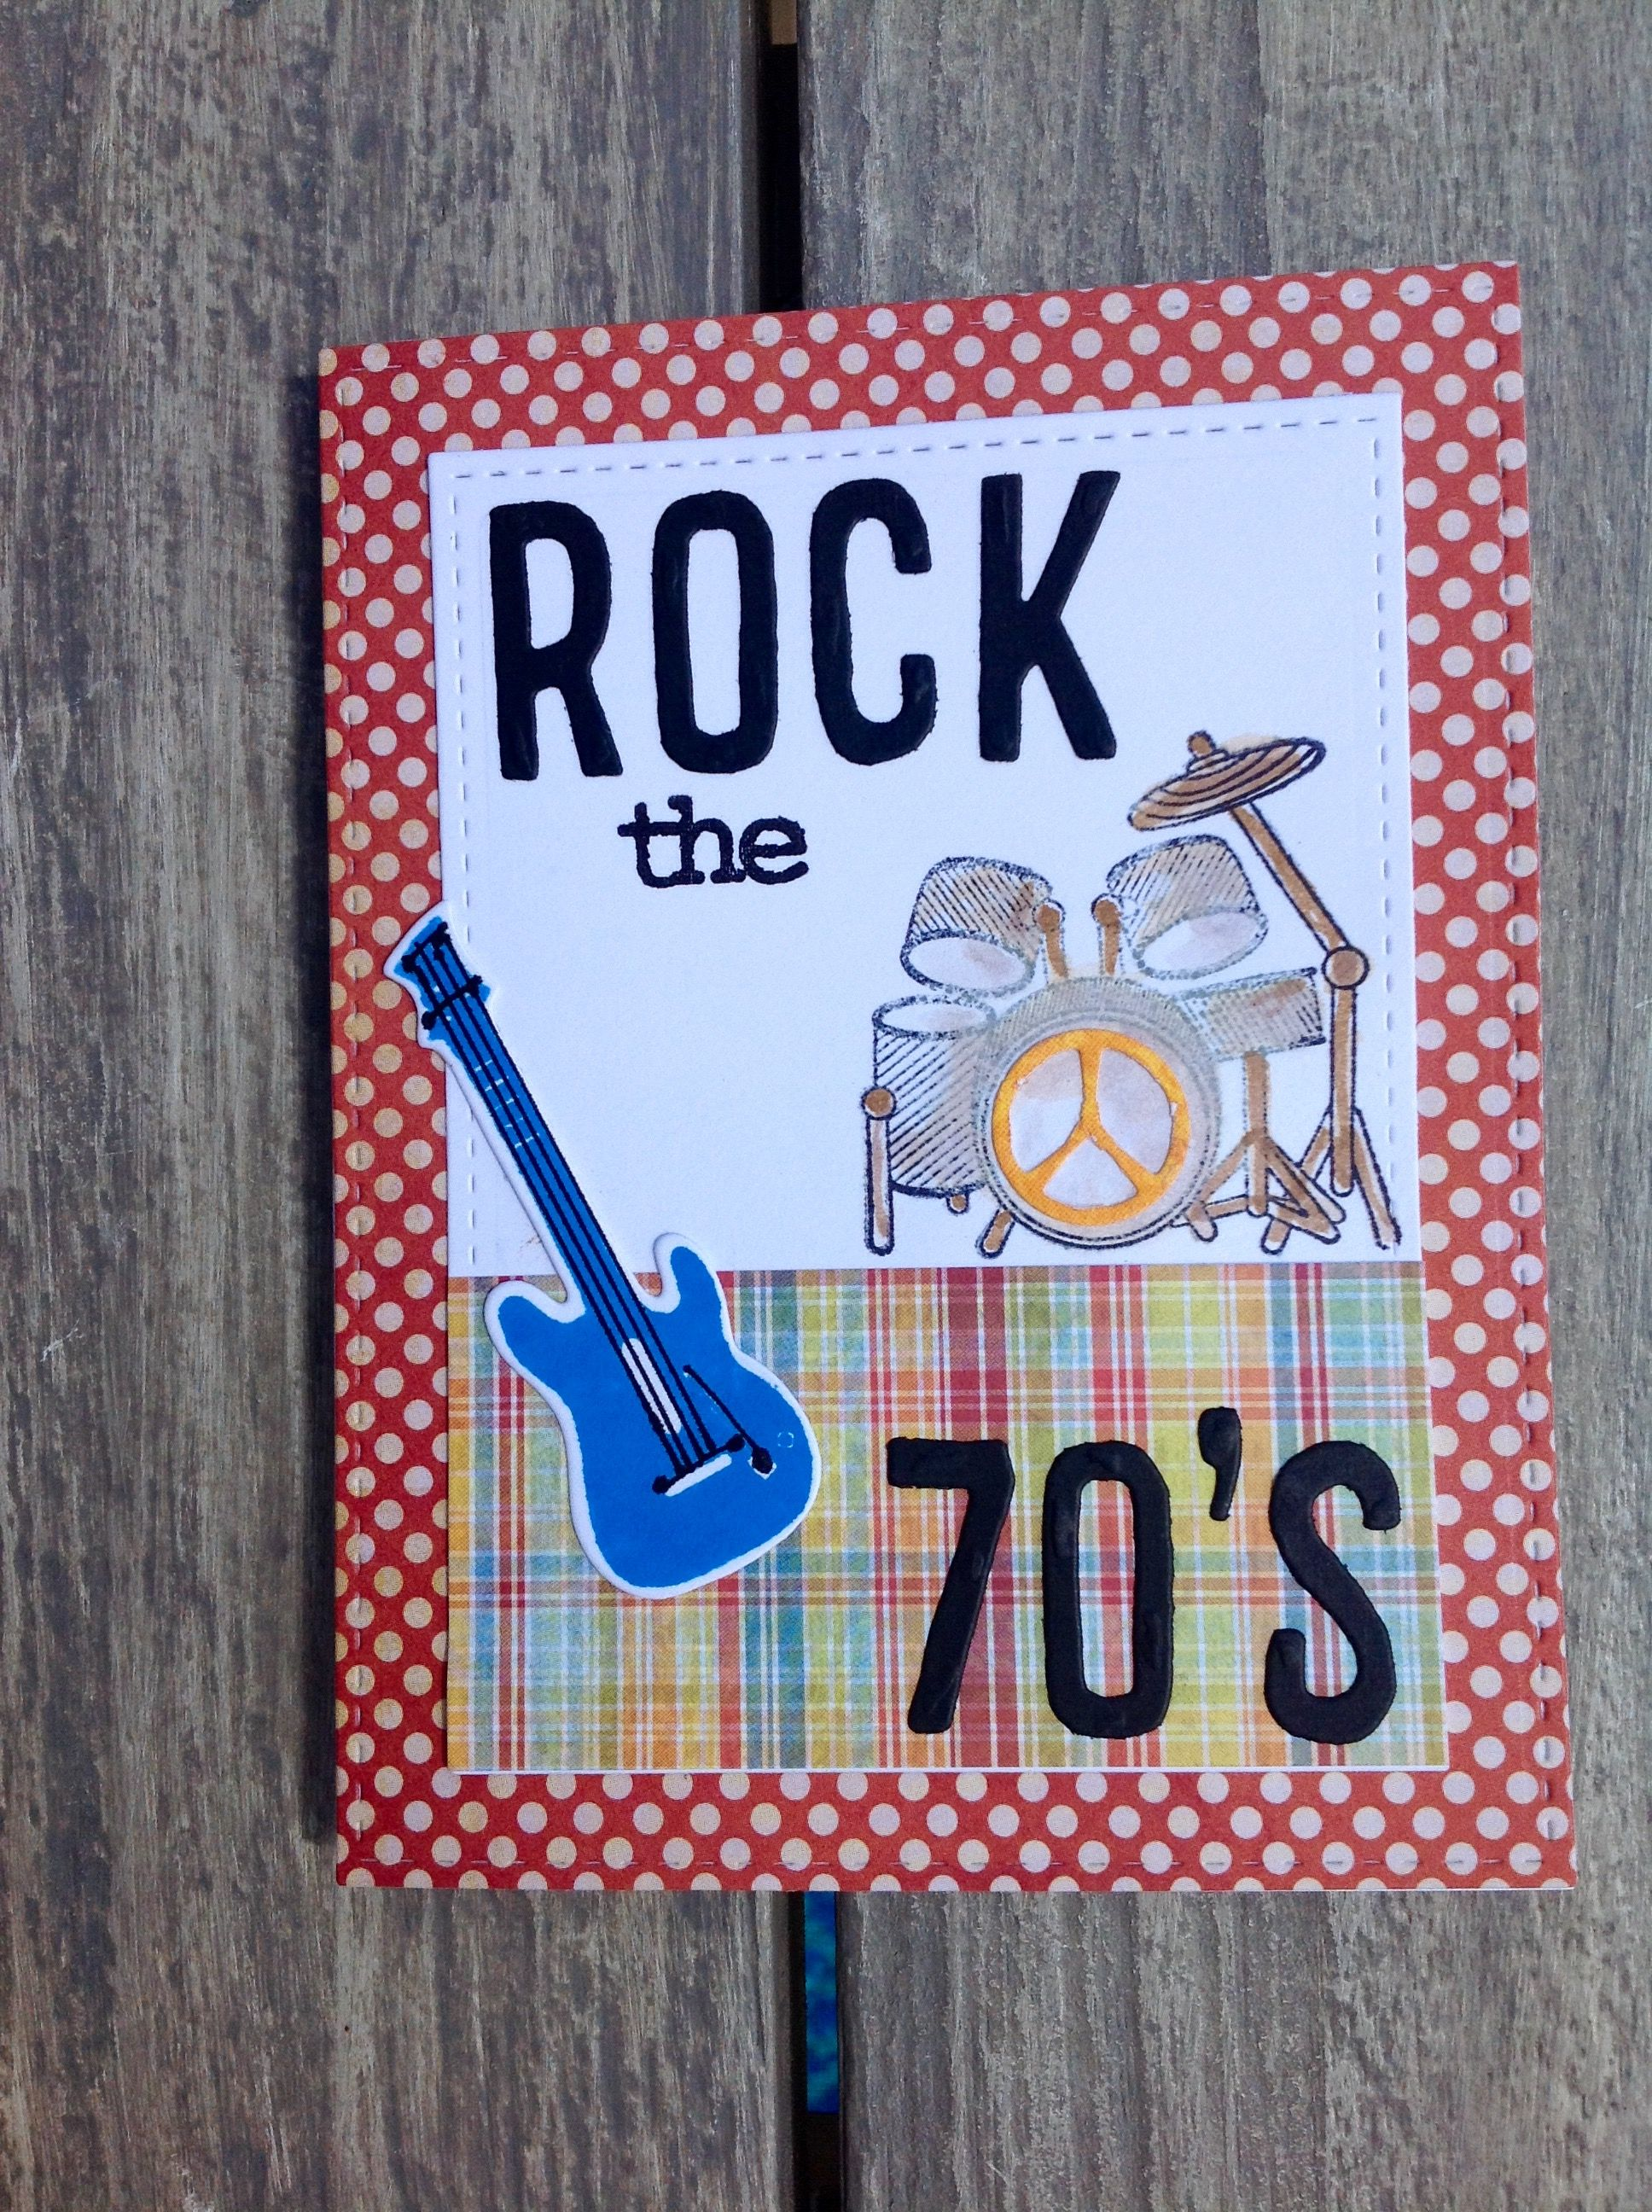 70th Birthday Card With A Rocking Chair Image On The Inside By